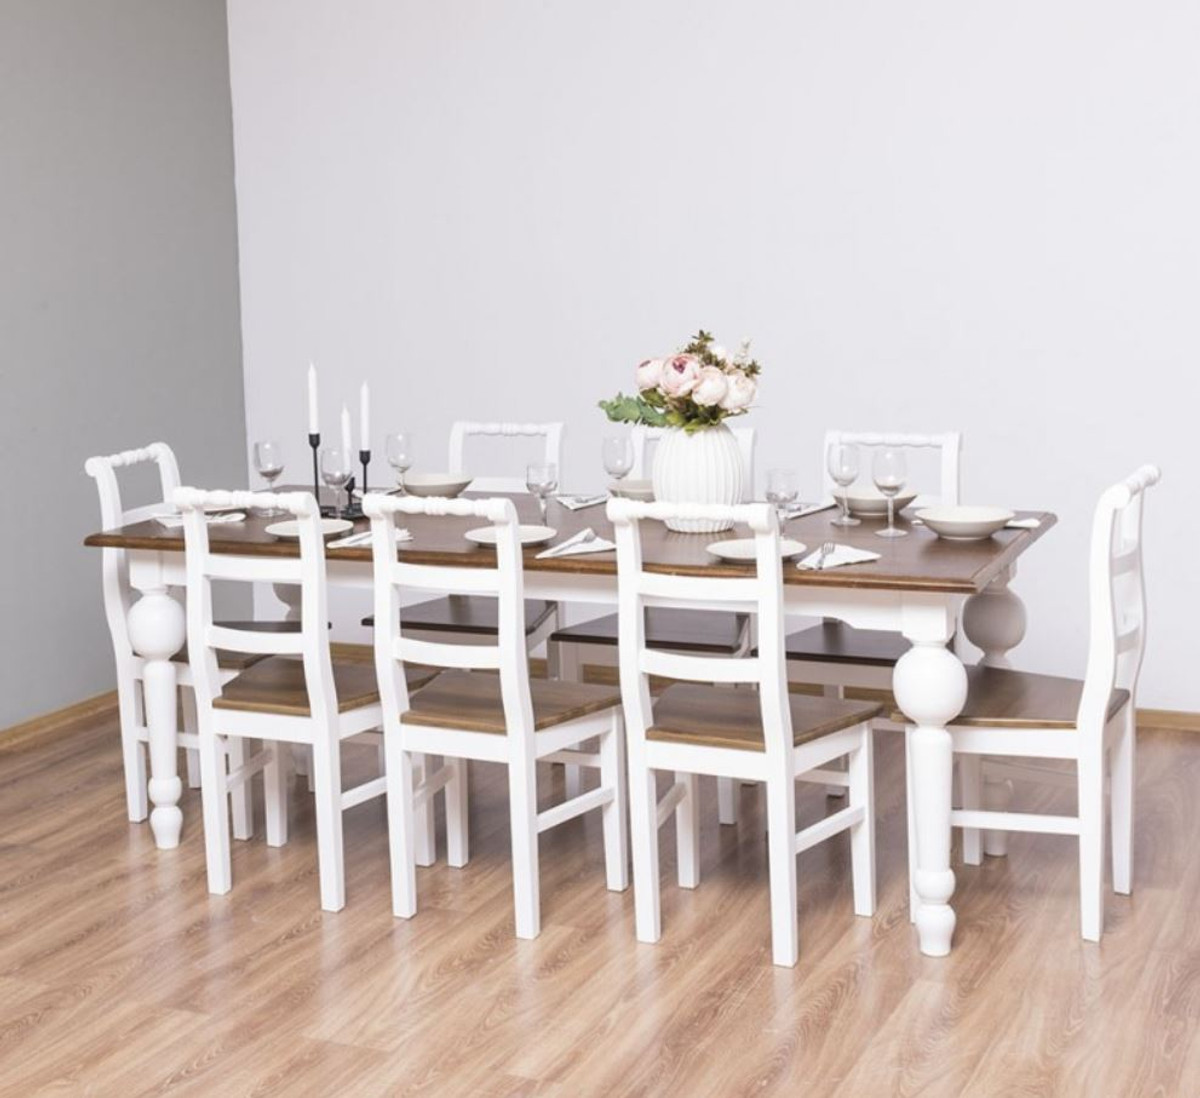 Casa Padrino Country Style Dining Room Furniture Set Brown White 1 Dining Table 8 Dining Chairs Solid Wood Dining Room Furniture Country Style Furniture